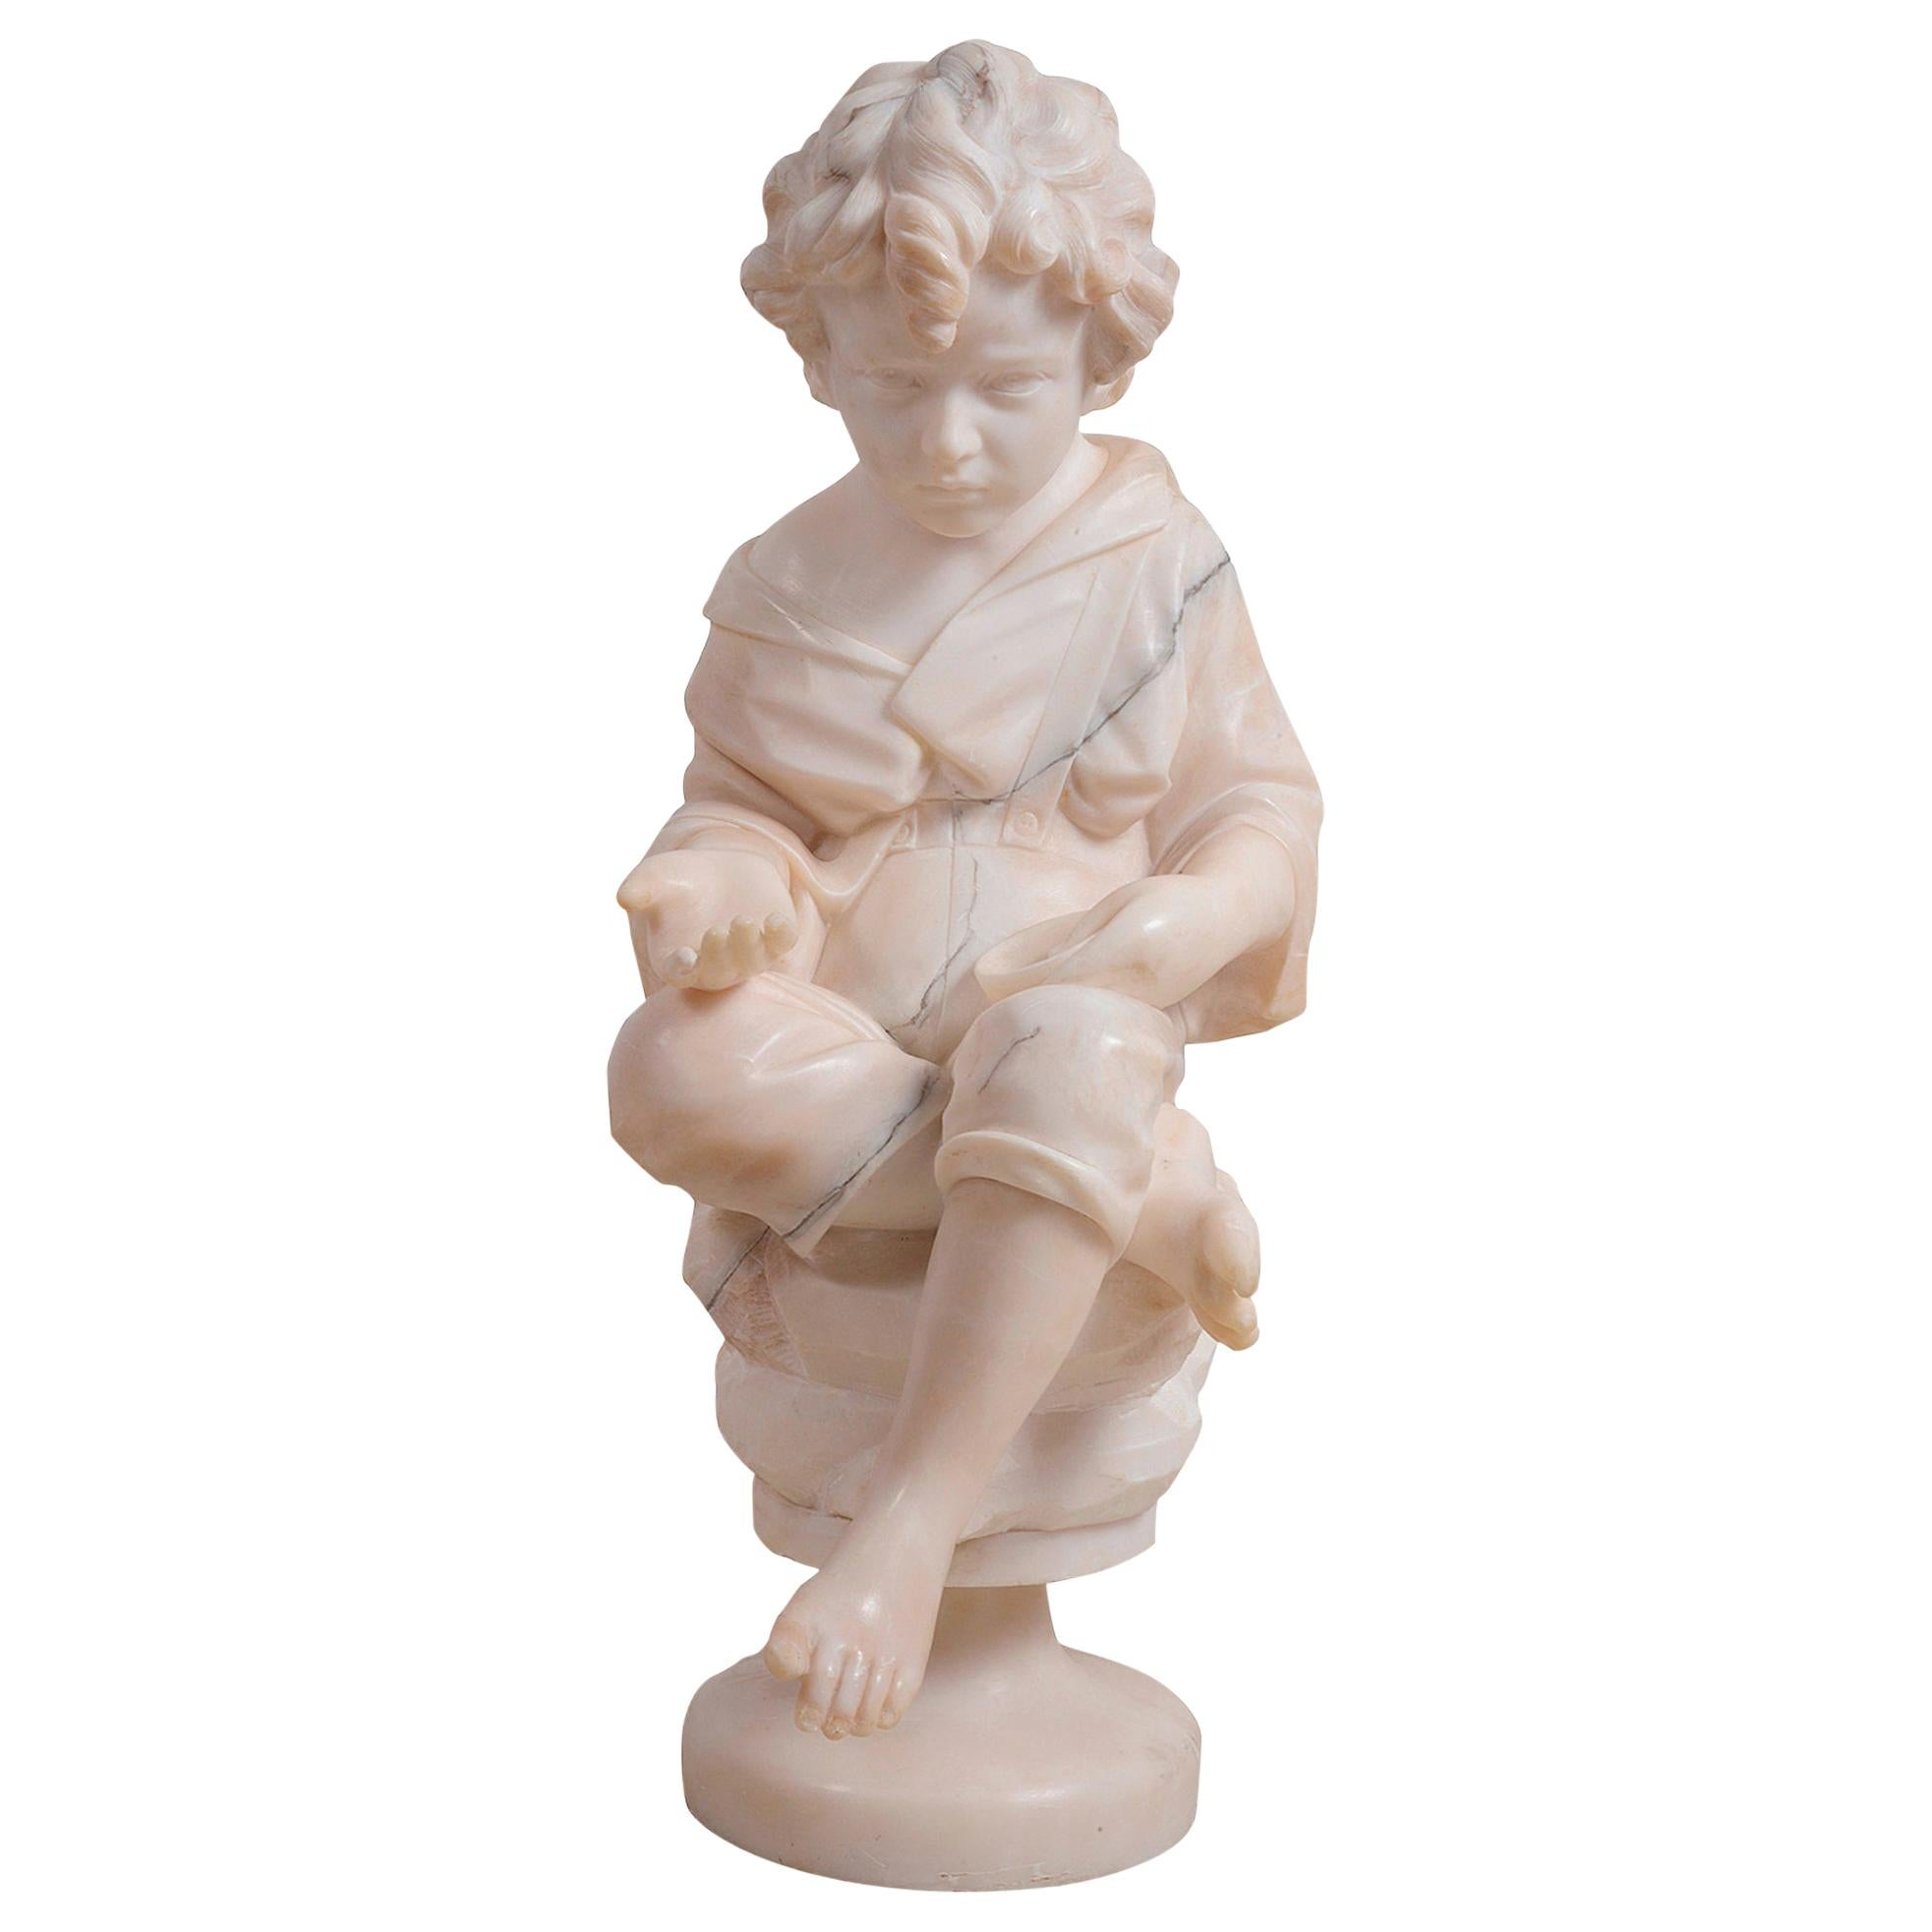 Italian 19th Century Marble Statue of a Young Beggar Boy